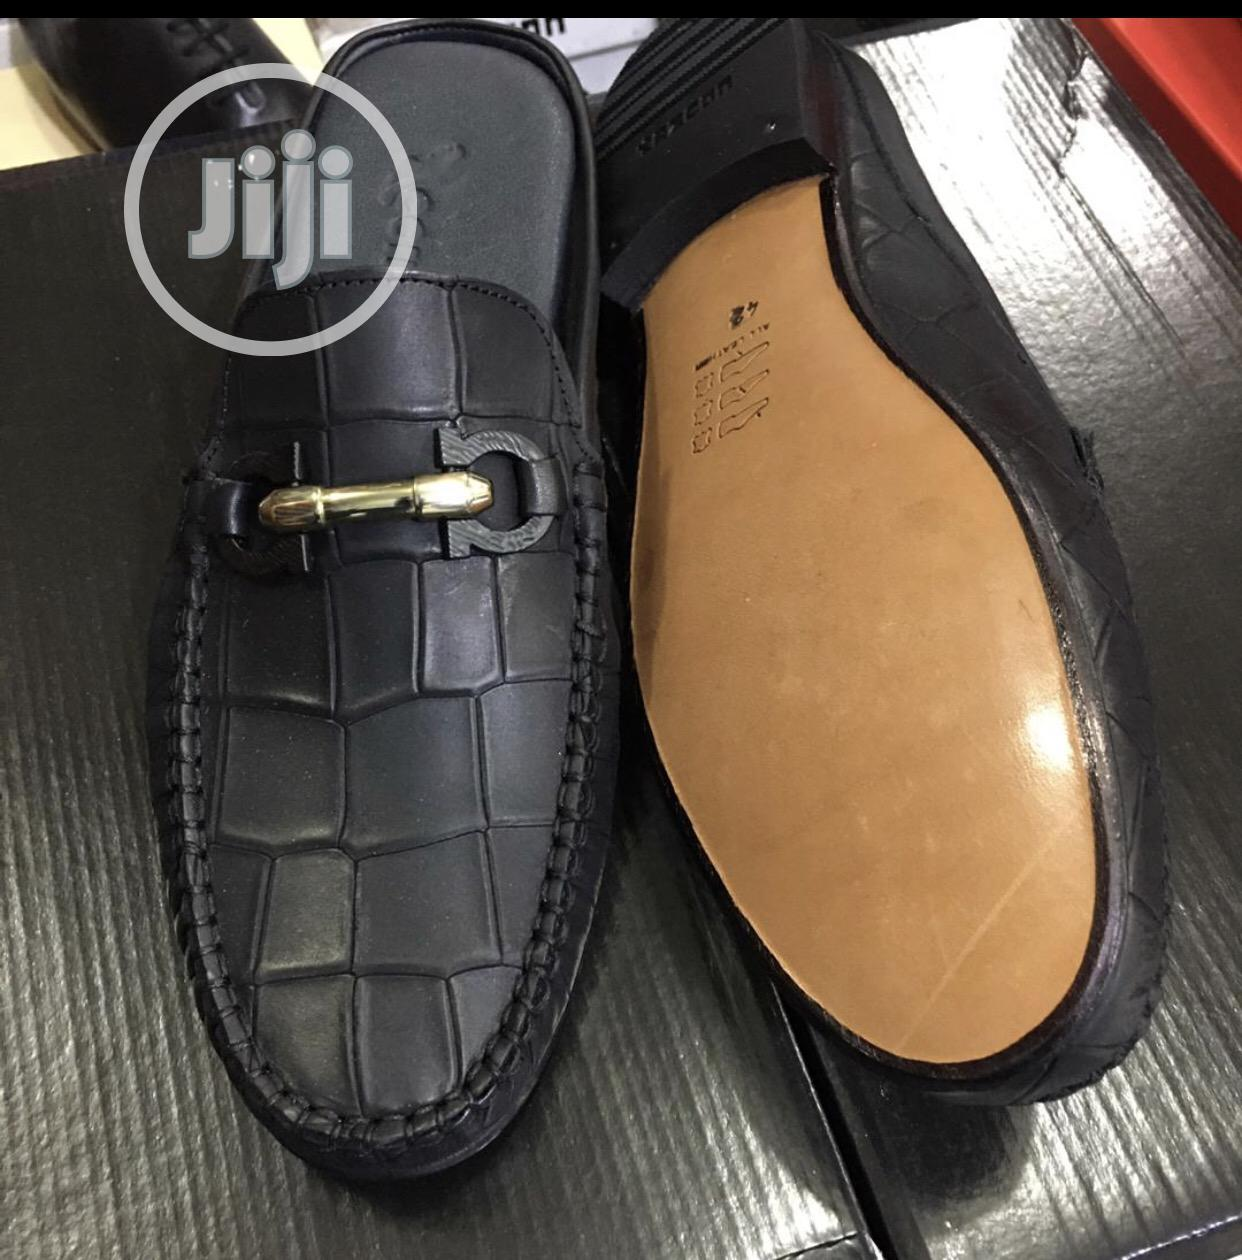 All Round Pure Italian Leather Half Shoe for Men | Shoes for sale in Lekki, Lagos State, Nigeria